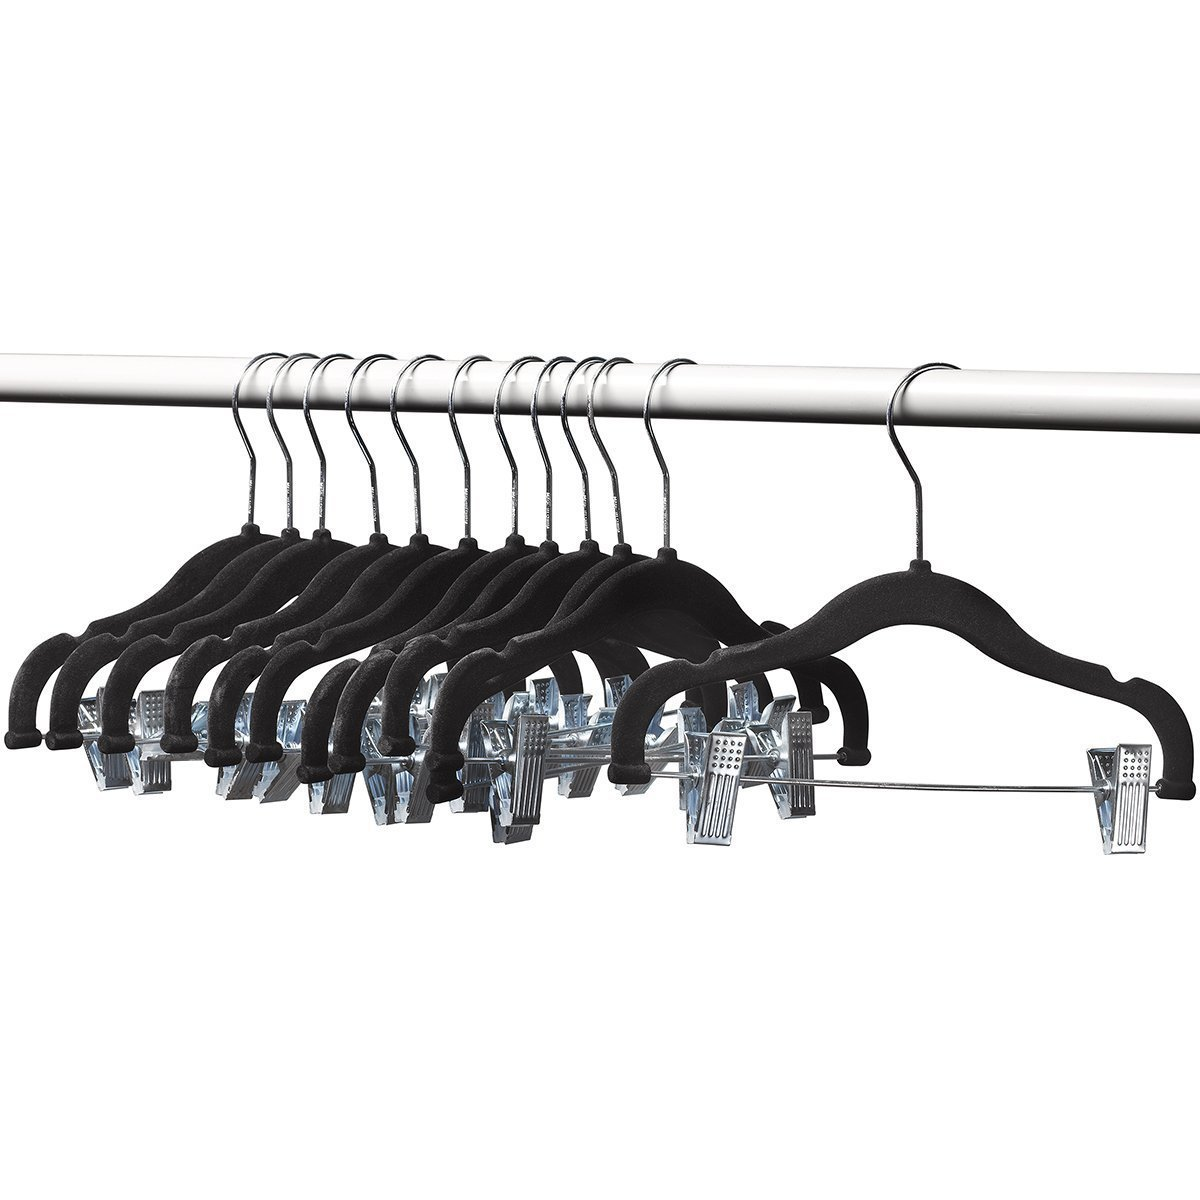 A1-hangers 12 PACK Kids hangers with clips BLACK (13'' length) baby Clothes Hangers Velvet Hangers use for skirt hangers Clothes Hanger pants hangers Ultra Thin No Slip kids hangers